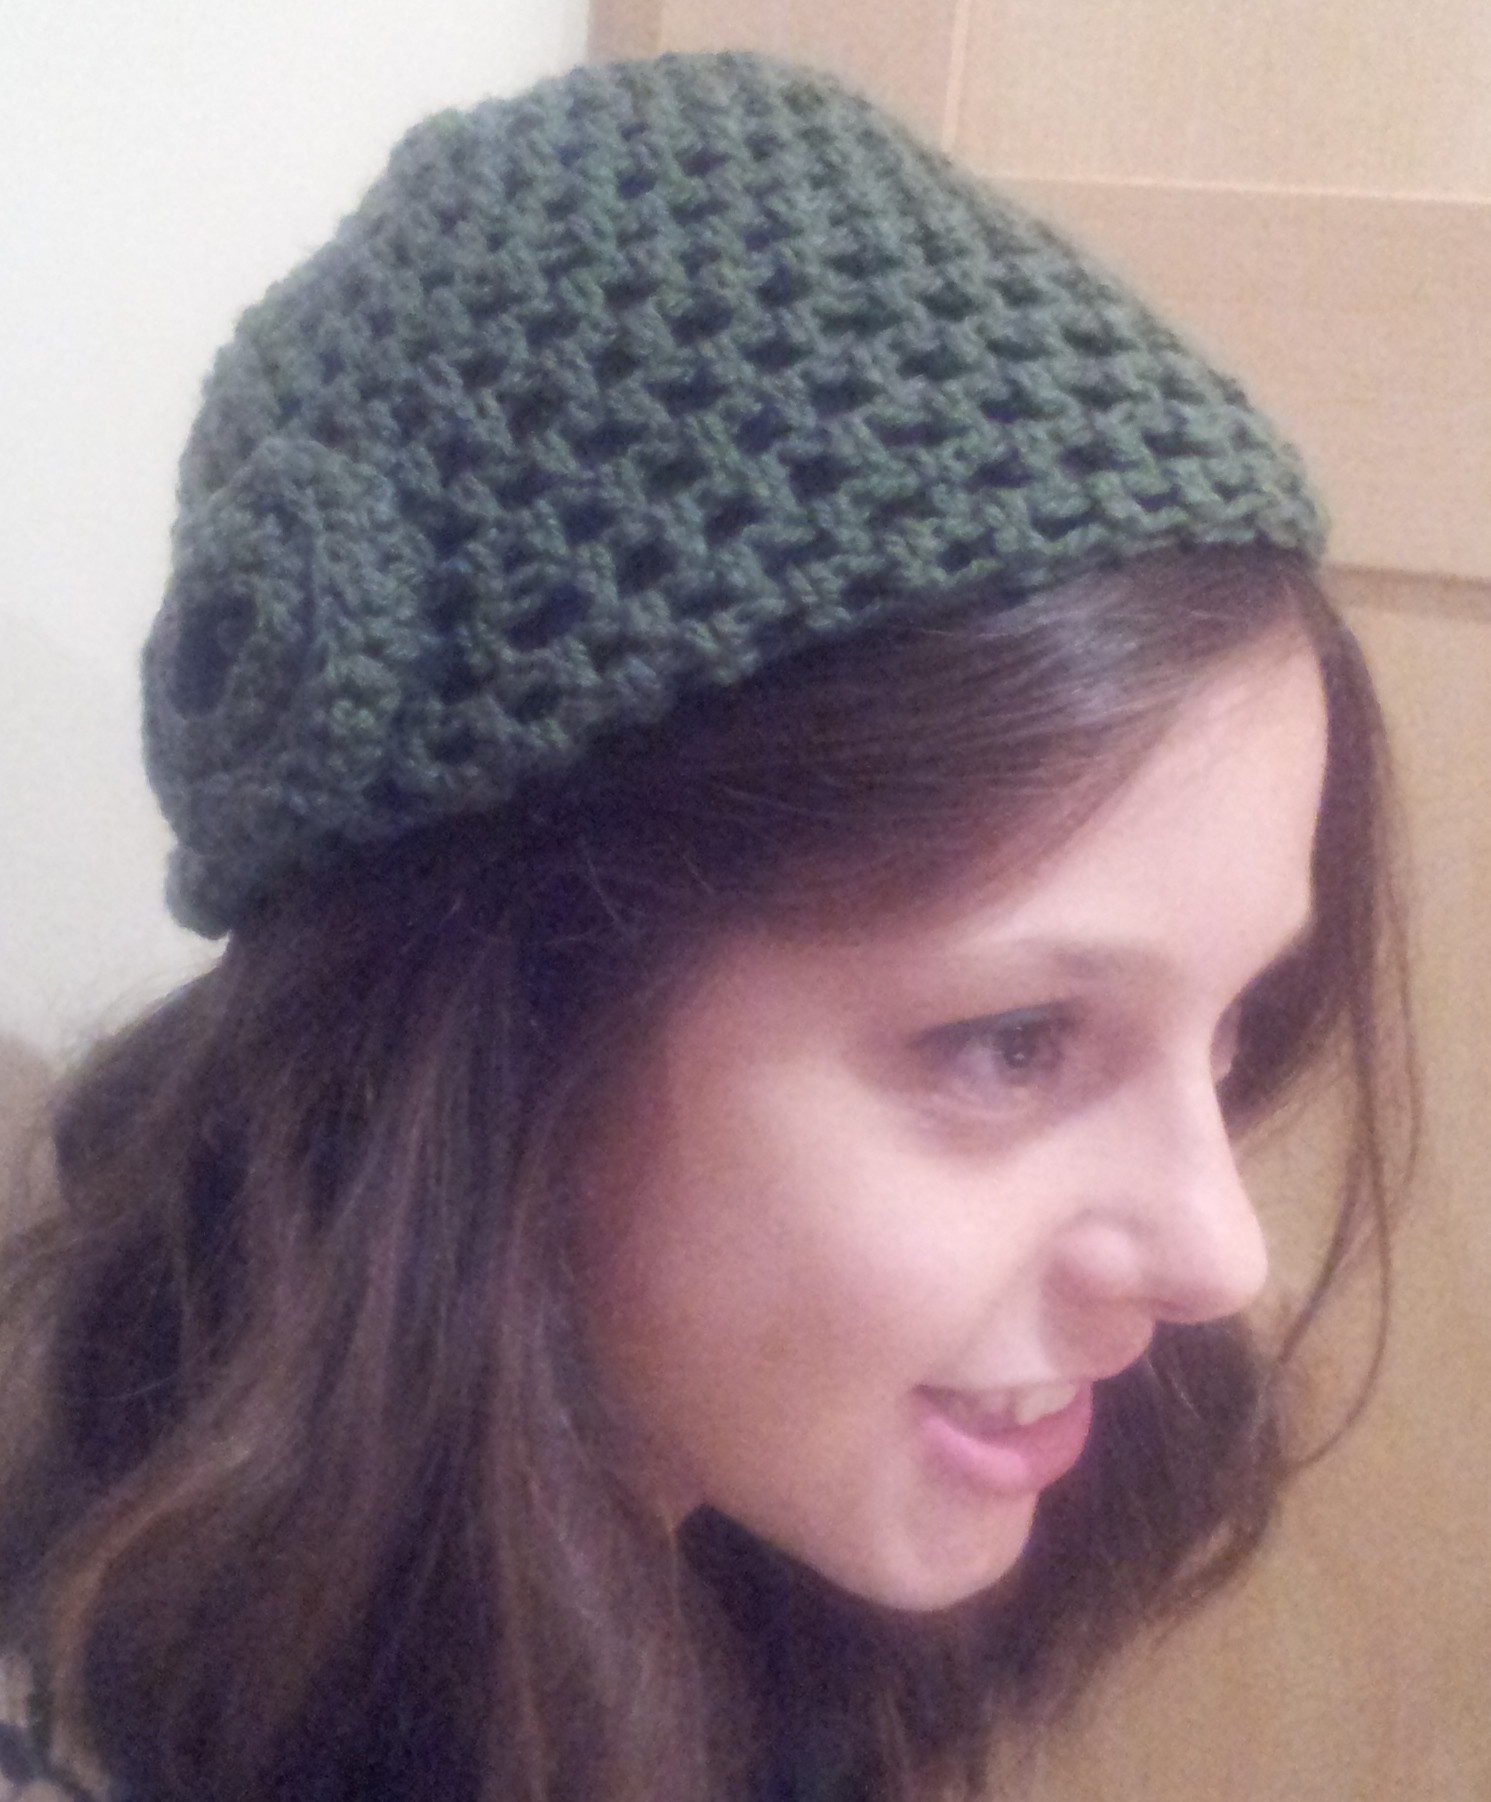 Best Of How to Make A Simple Crochet Hat – Free Pattern Cute Crochet Hats Of Awesome 41 Ideas Cute Crochet Hats